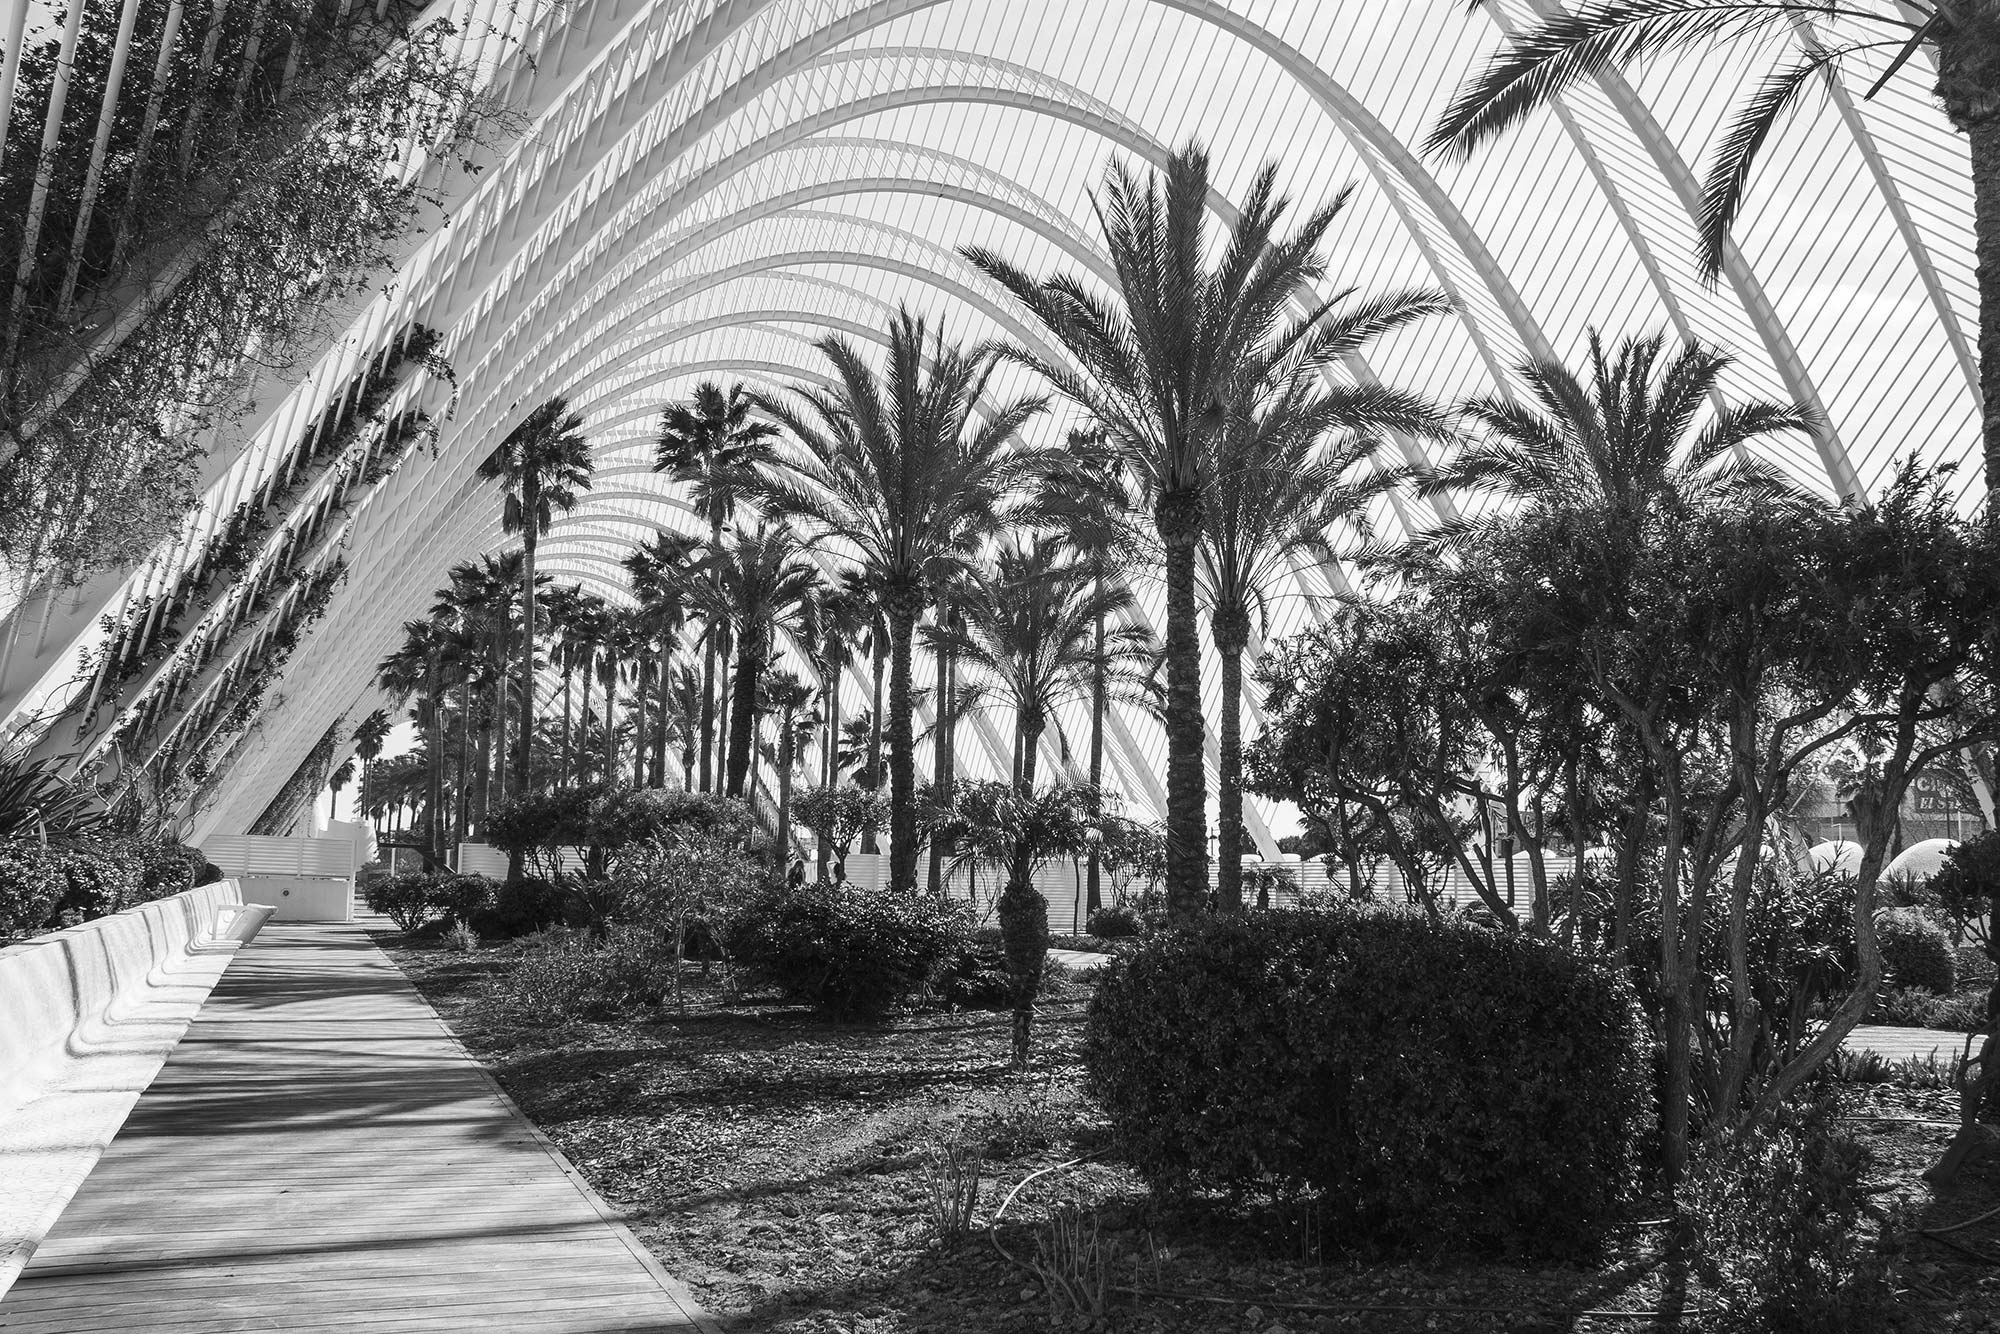 Palms and Arches - Valencia, Spain